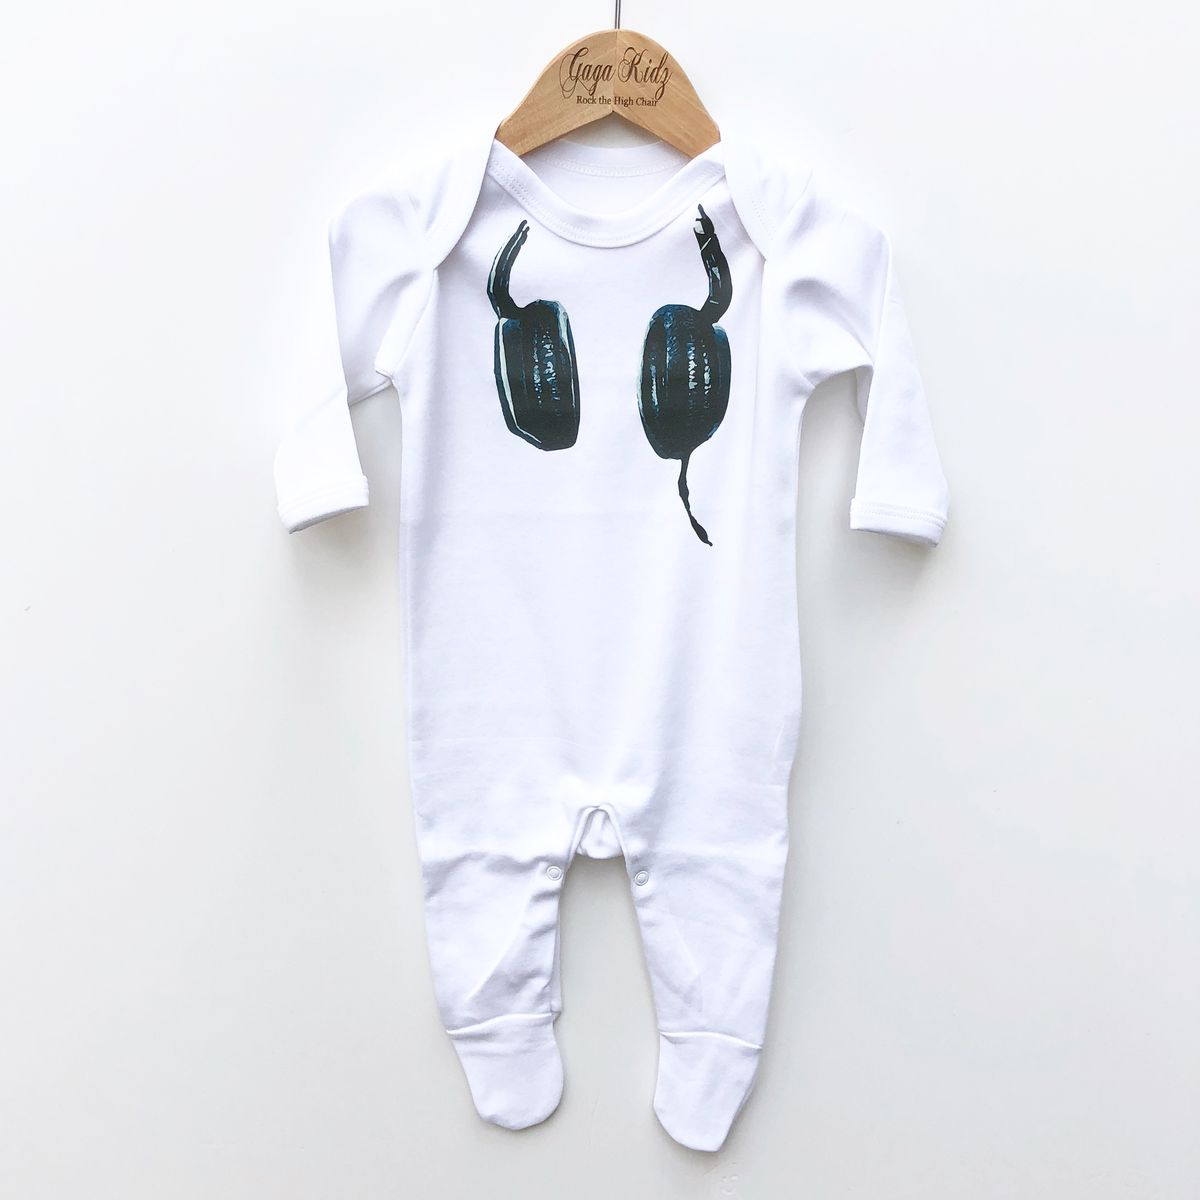 DJ Headphones Baby Romper Suit (various sizes) - product images  of